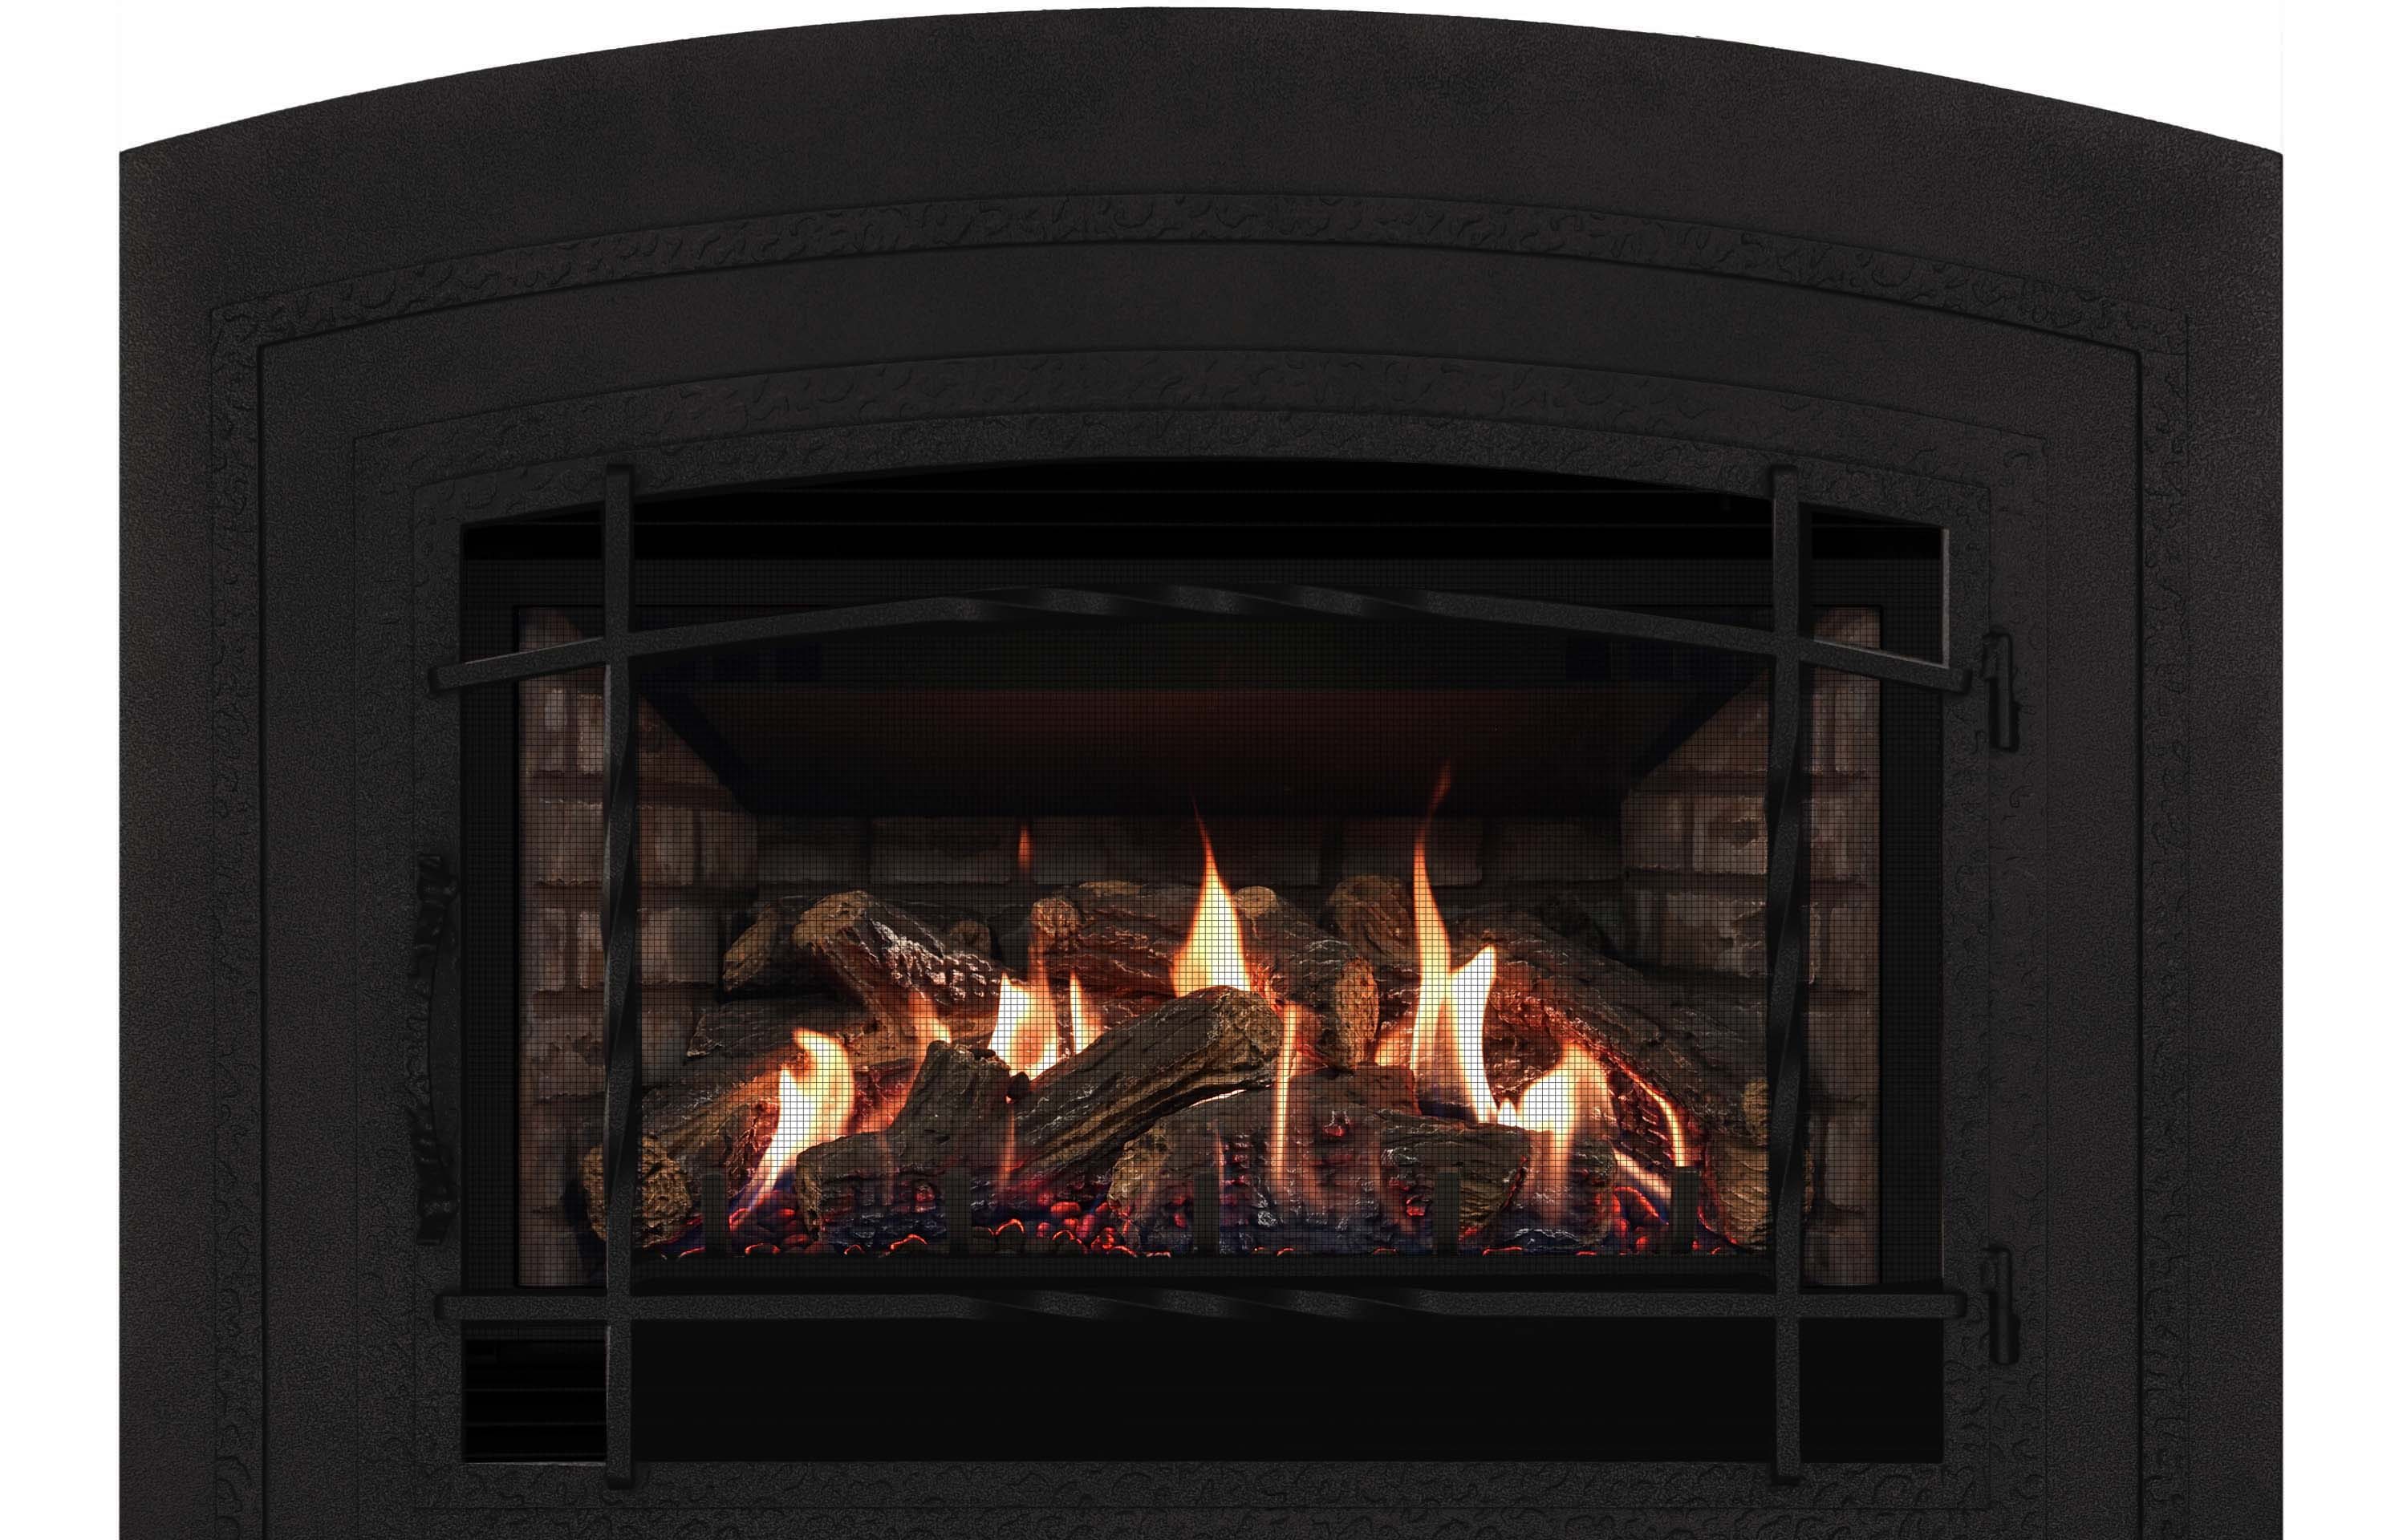 with photos to saver south of screen glass beauty add any the a fireplace